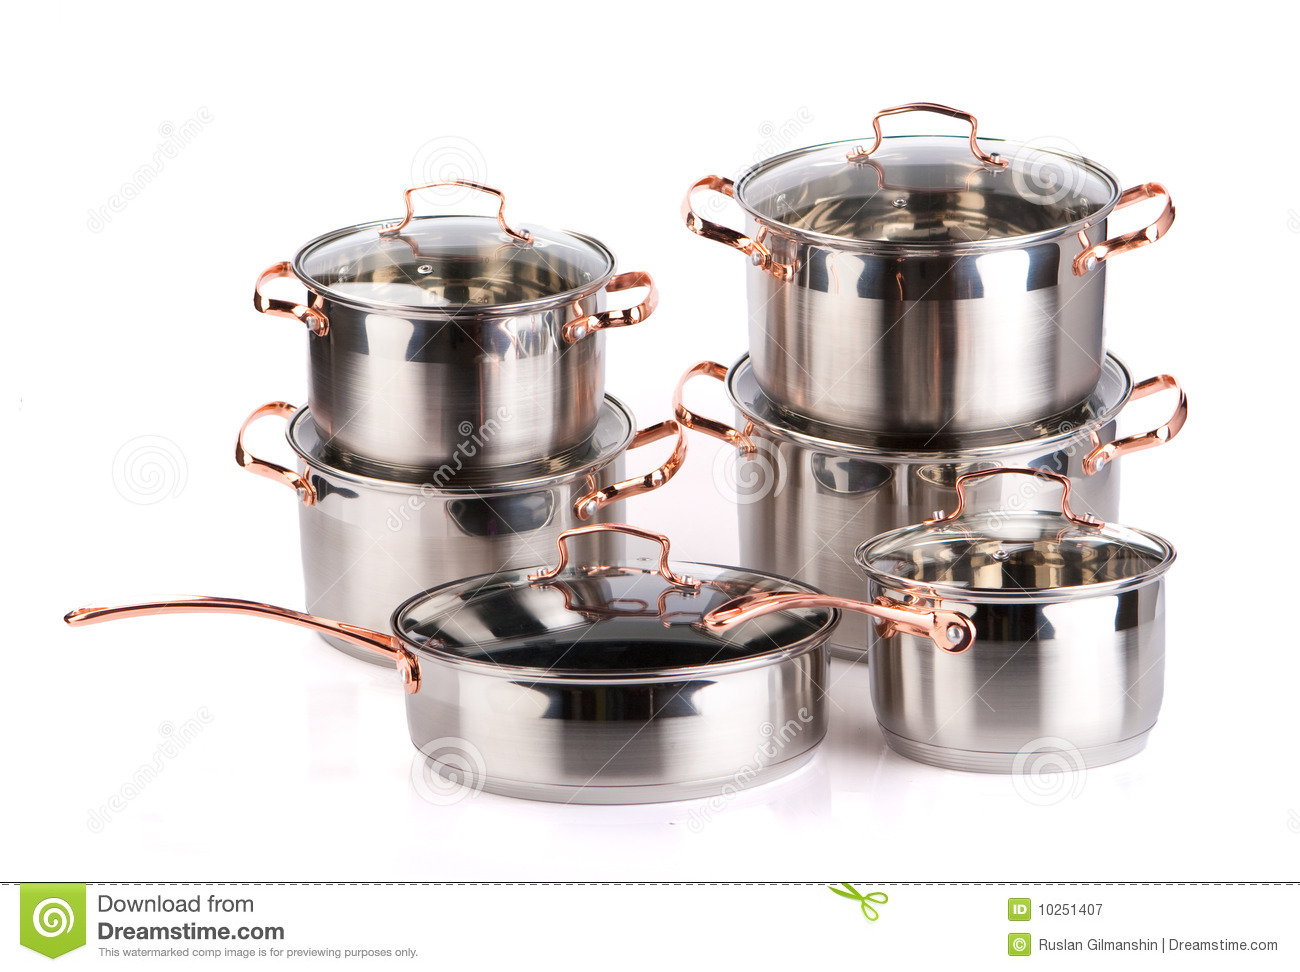 stainless steel cooking pots royalty free stock photography image 10251407. Black Bedroom Furniture Sets. Home Design Ideas